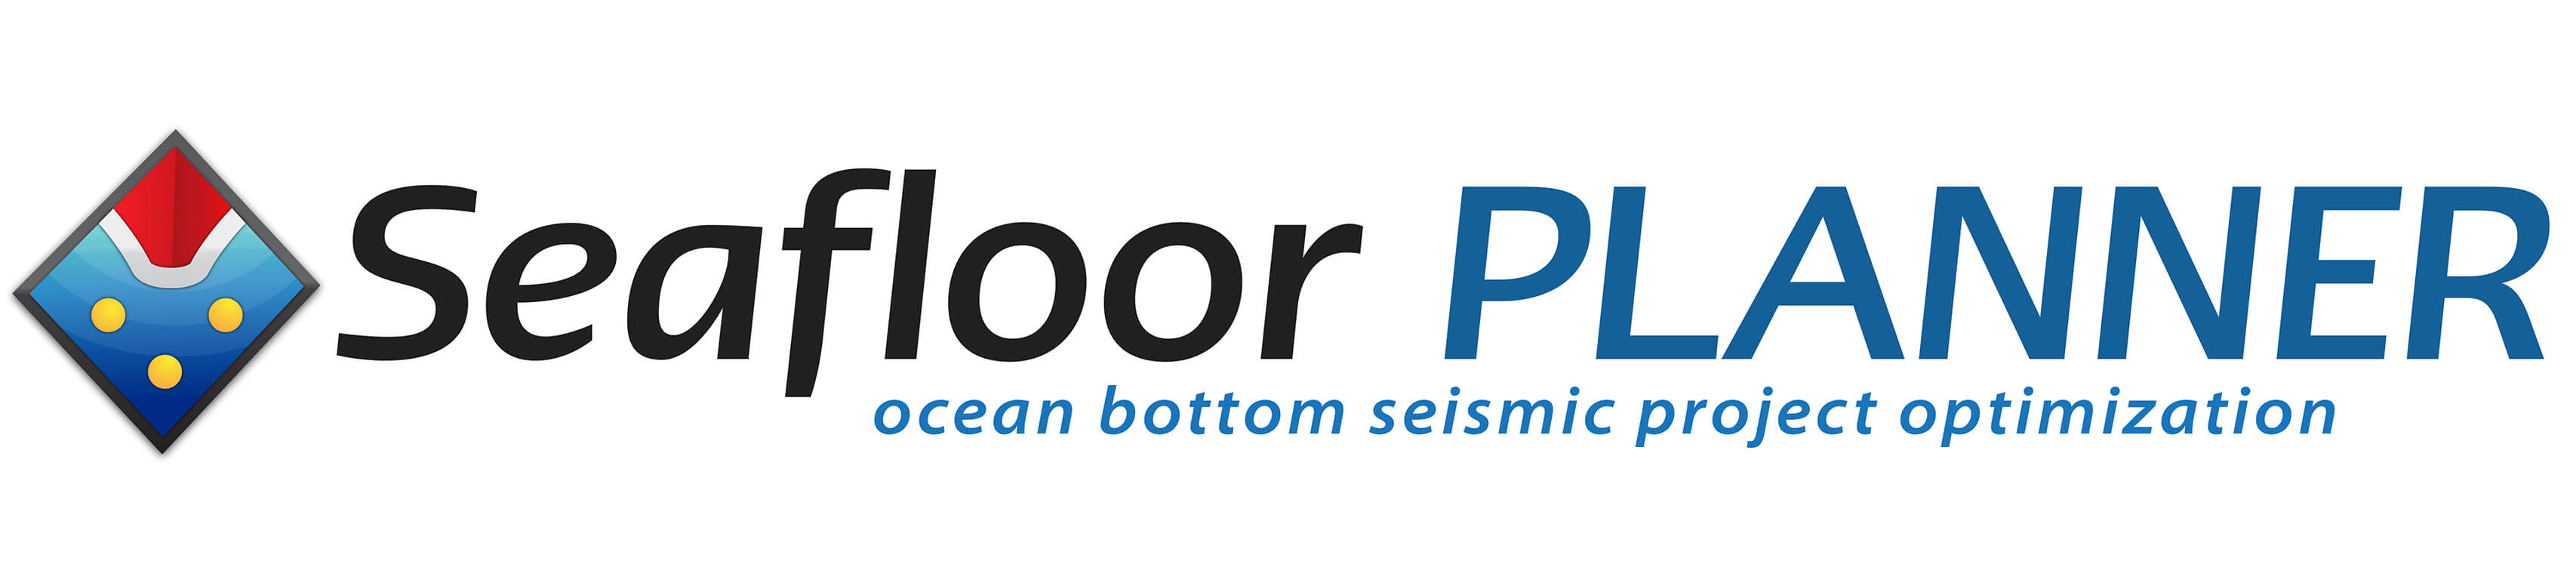 SeafloorPLANNER is a planner and optimizer to design, optimize and manage the acquisition of ocean bottom node and ocean bottom cable surveys.